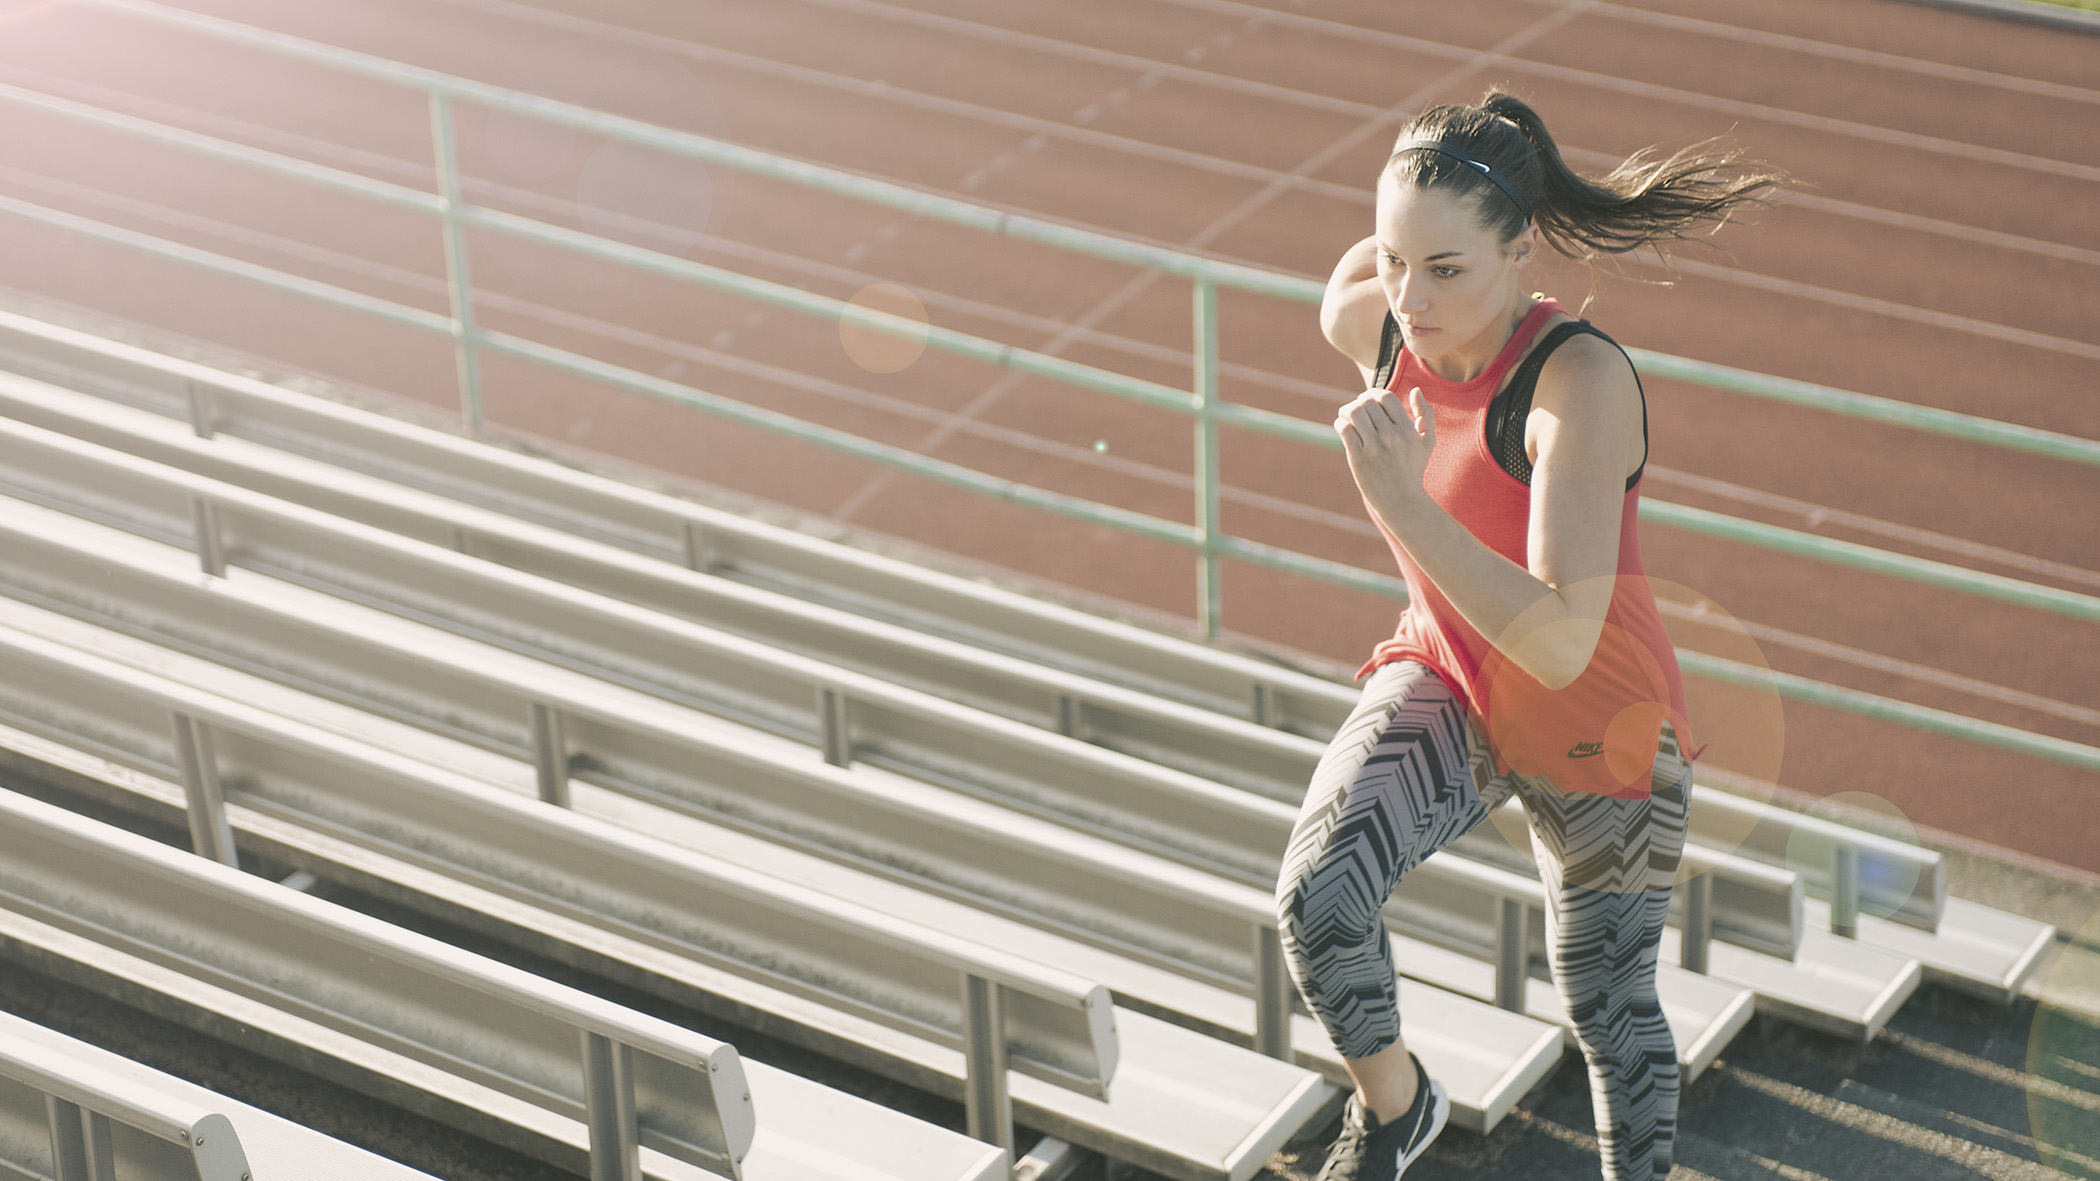 IanCoble_IC_050916_Ryan-Natalie_1135